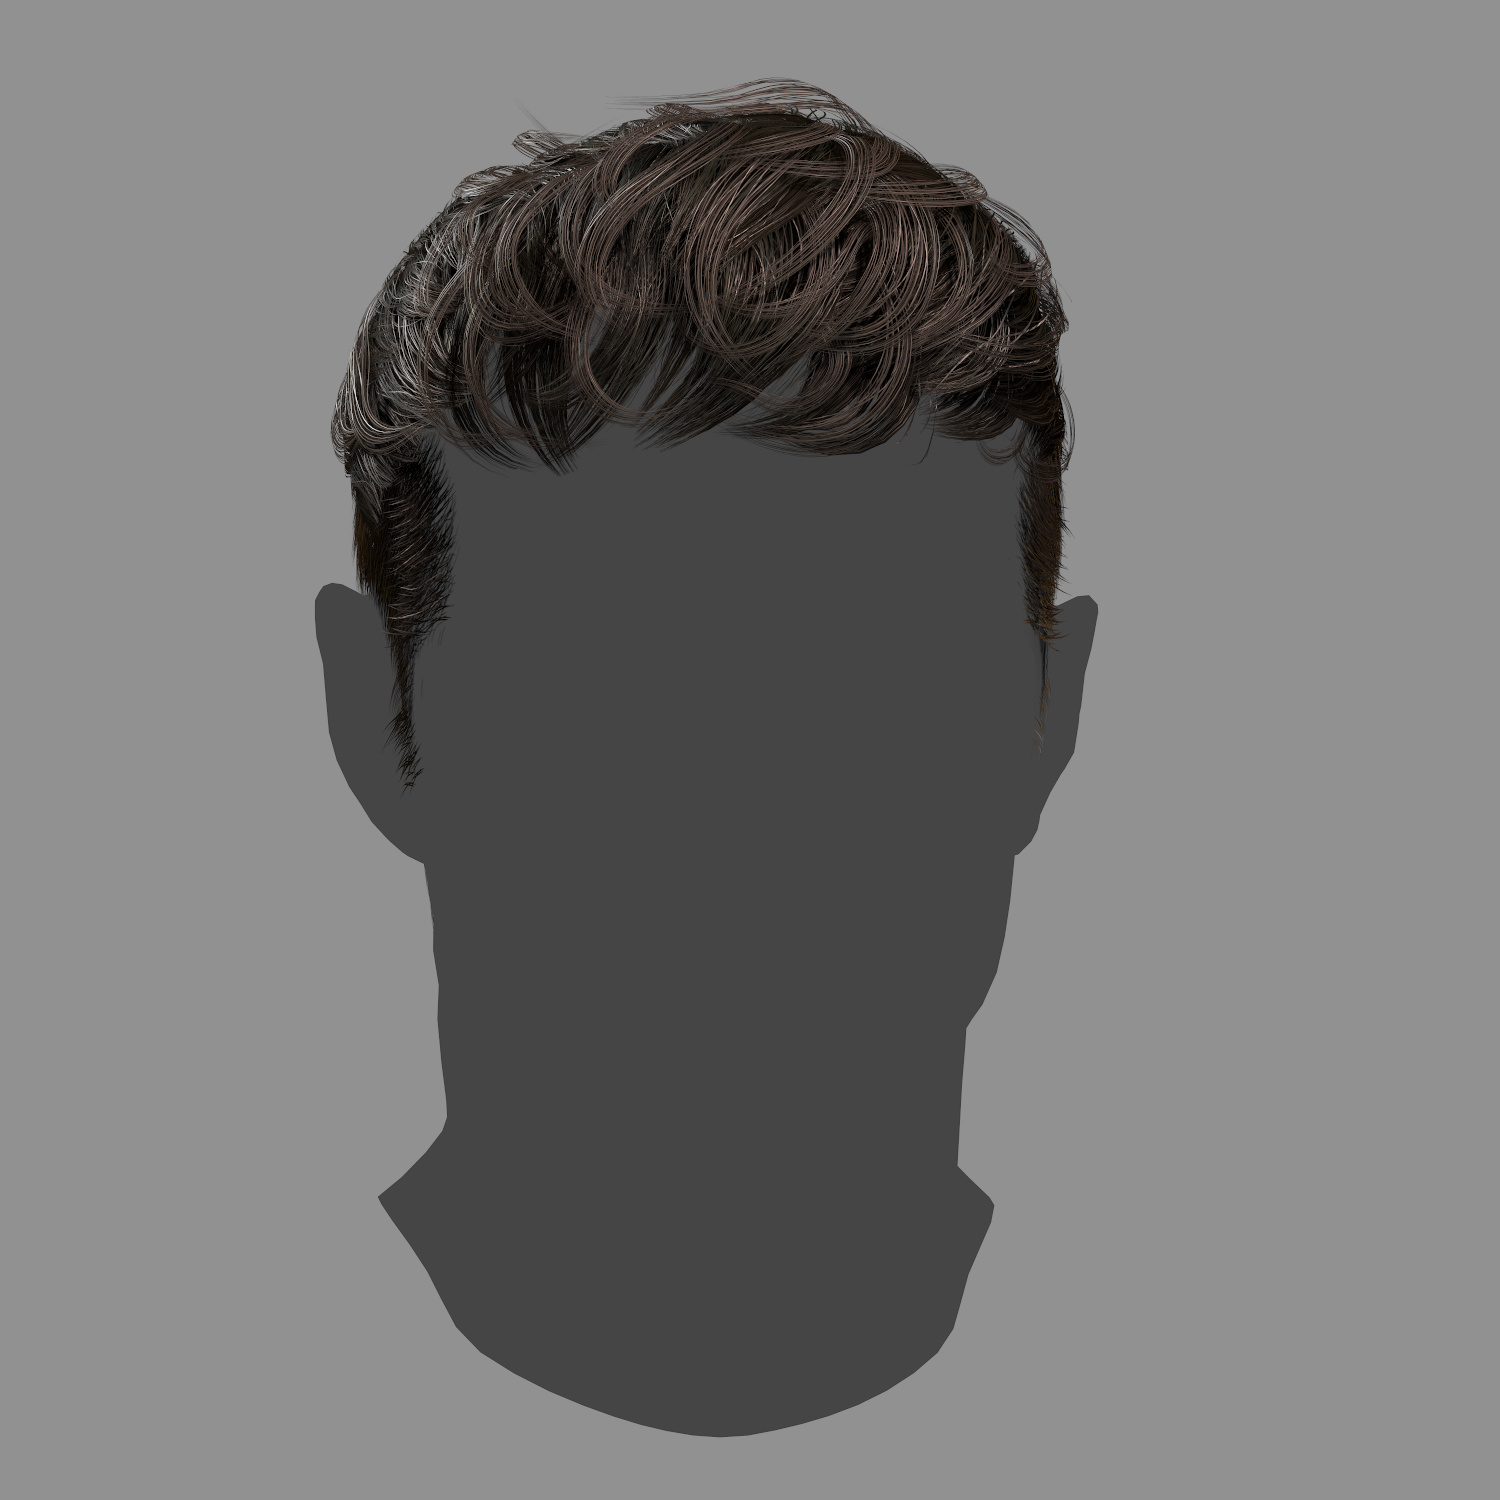 Real Time Hair - Wip - Finished Projects - Blender Artists